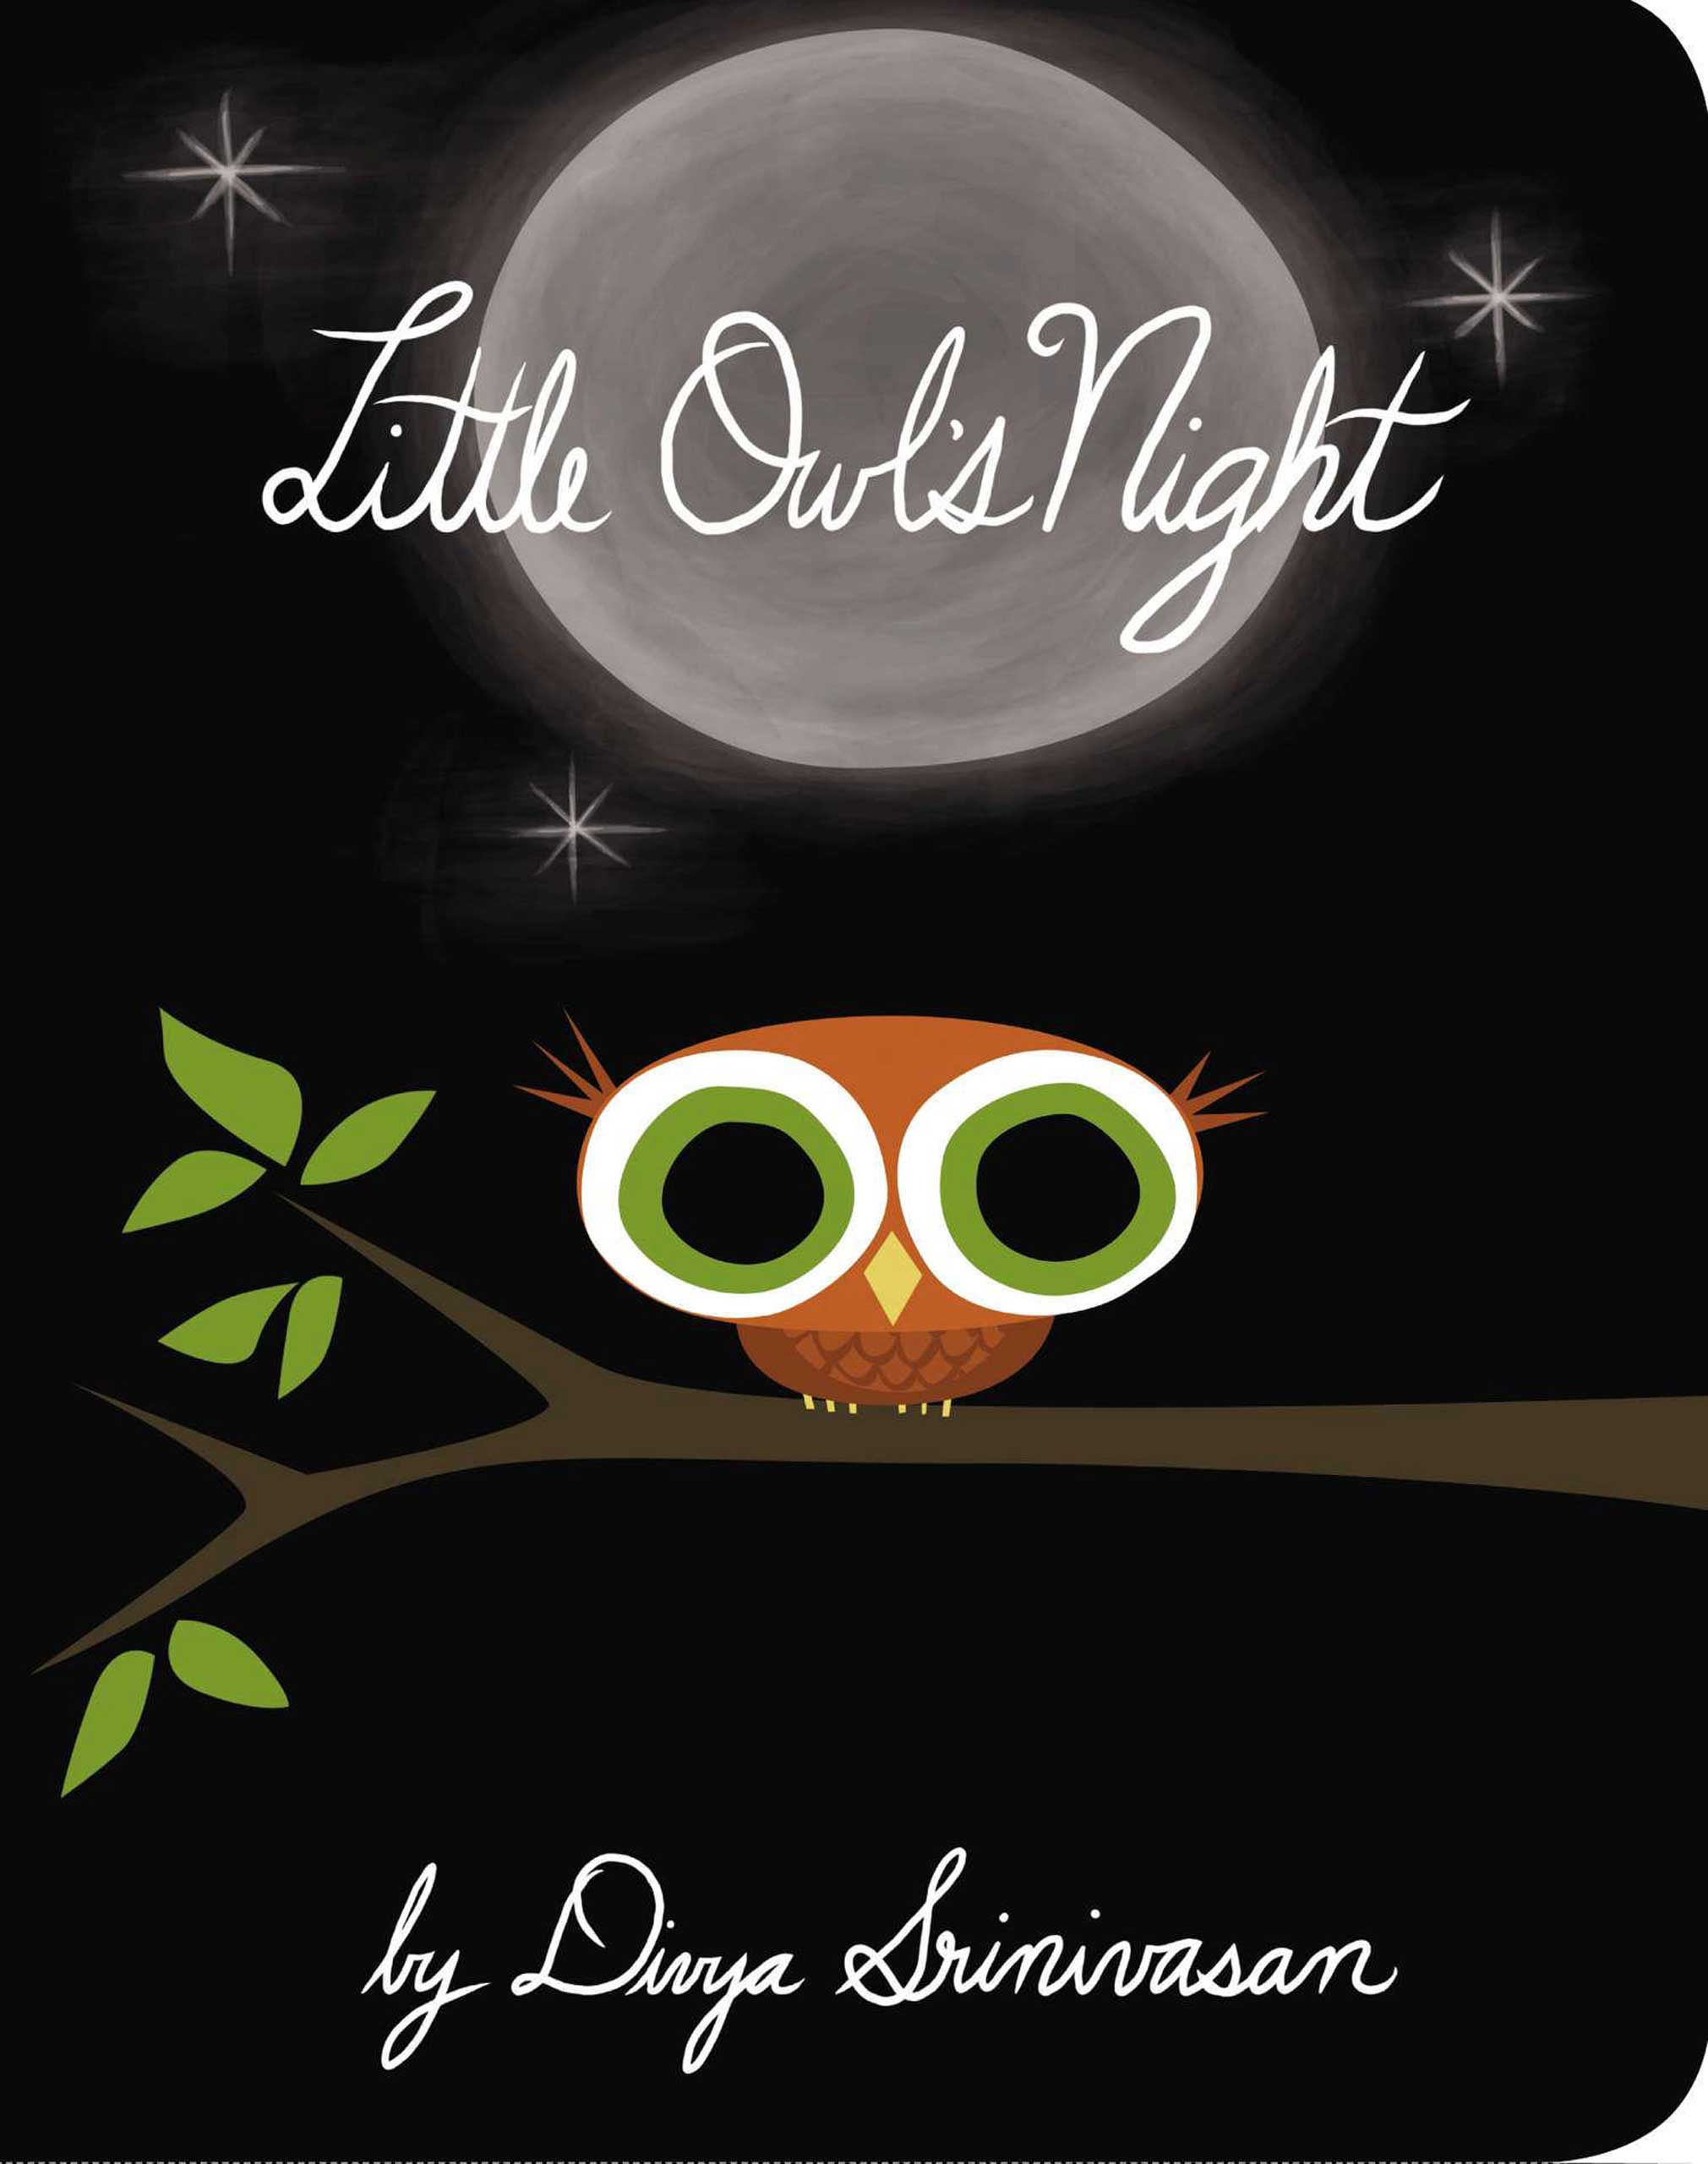 Little Owl's Night, by Divya Srinivasan.                                                                                                                            This gorgeously illustrated book teaches kids that night is not to be feared, and is beautiful in its own right.                                                                                                                            Buy now: Little Owl's Night